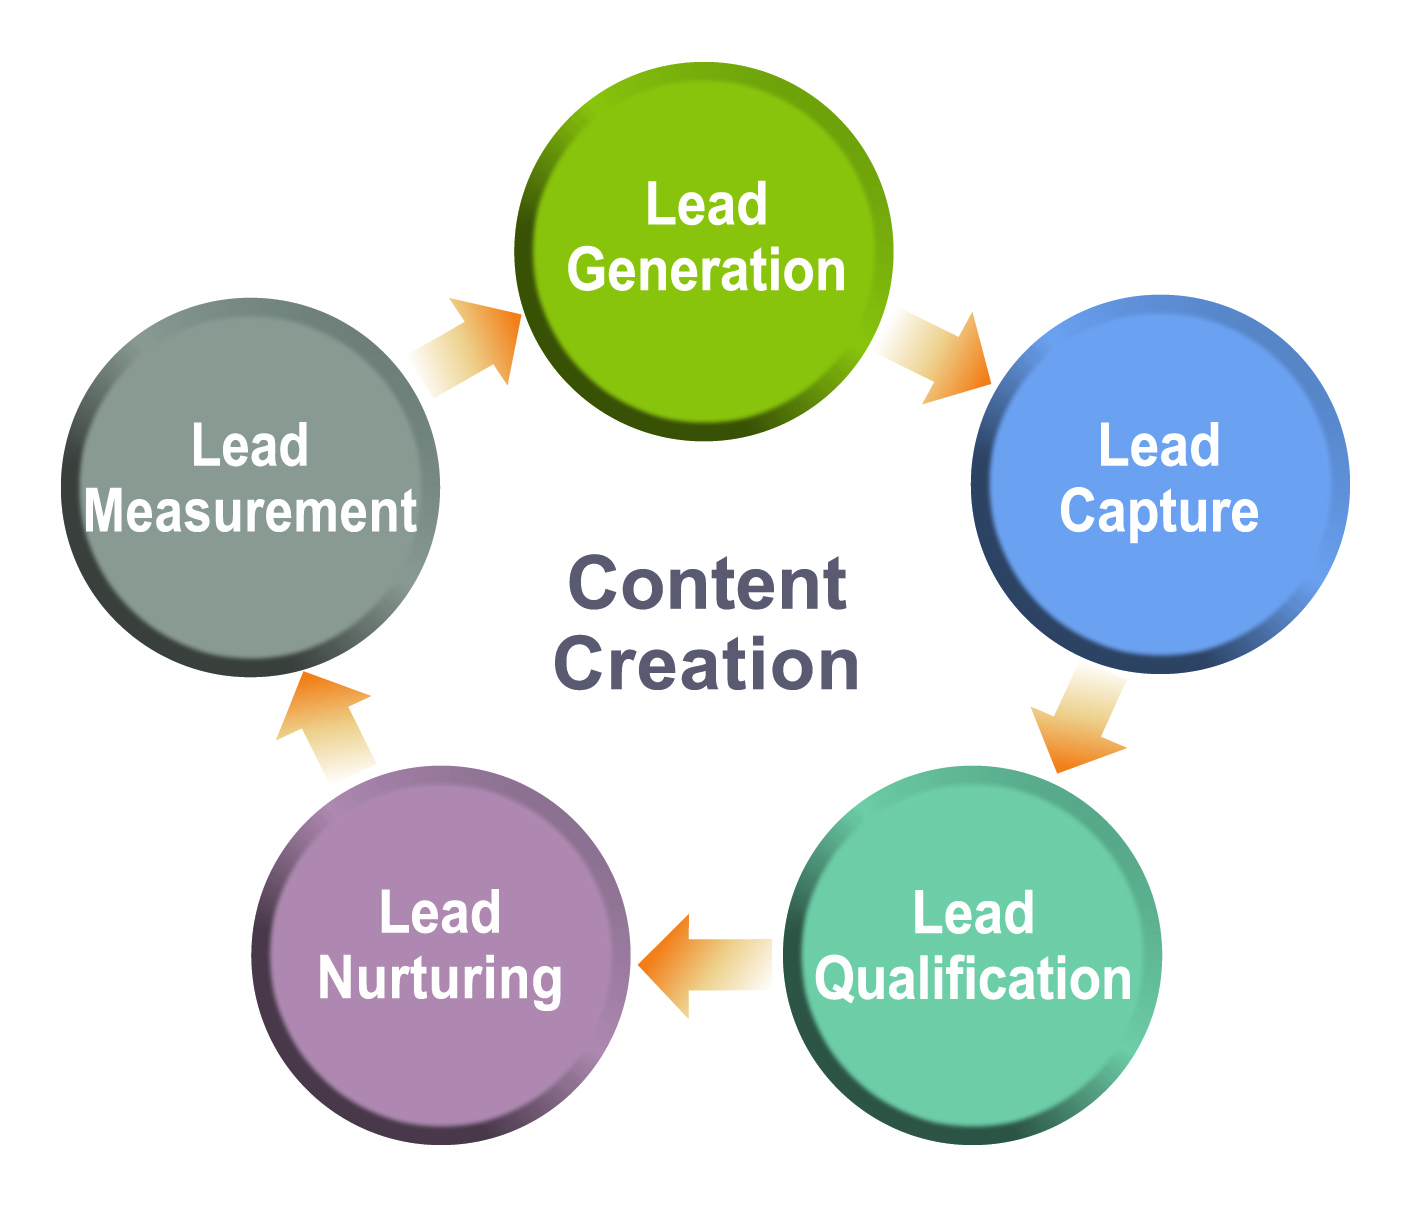 lead poisoning research paper Lead poisoning in children sections to include are an abstract, risk assessment and analysis of the problem of lead poisoning, current research and interventions being used these custom papers should be used with proper reference.